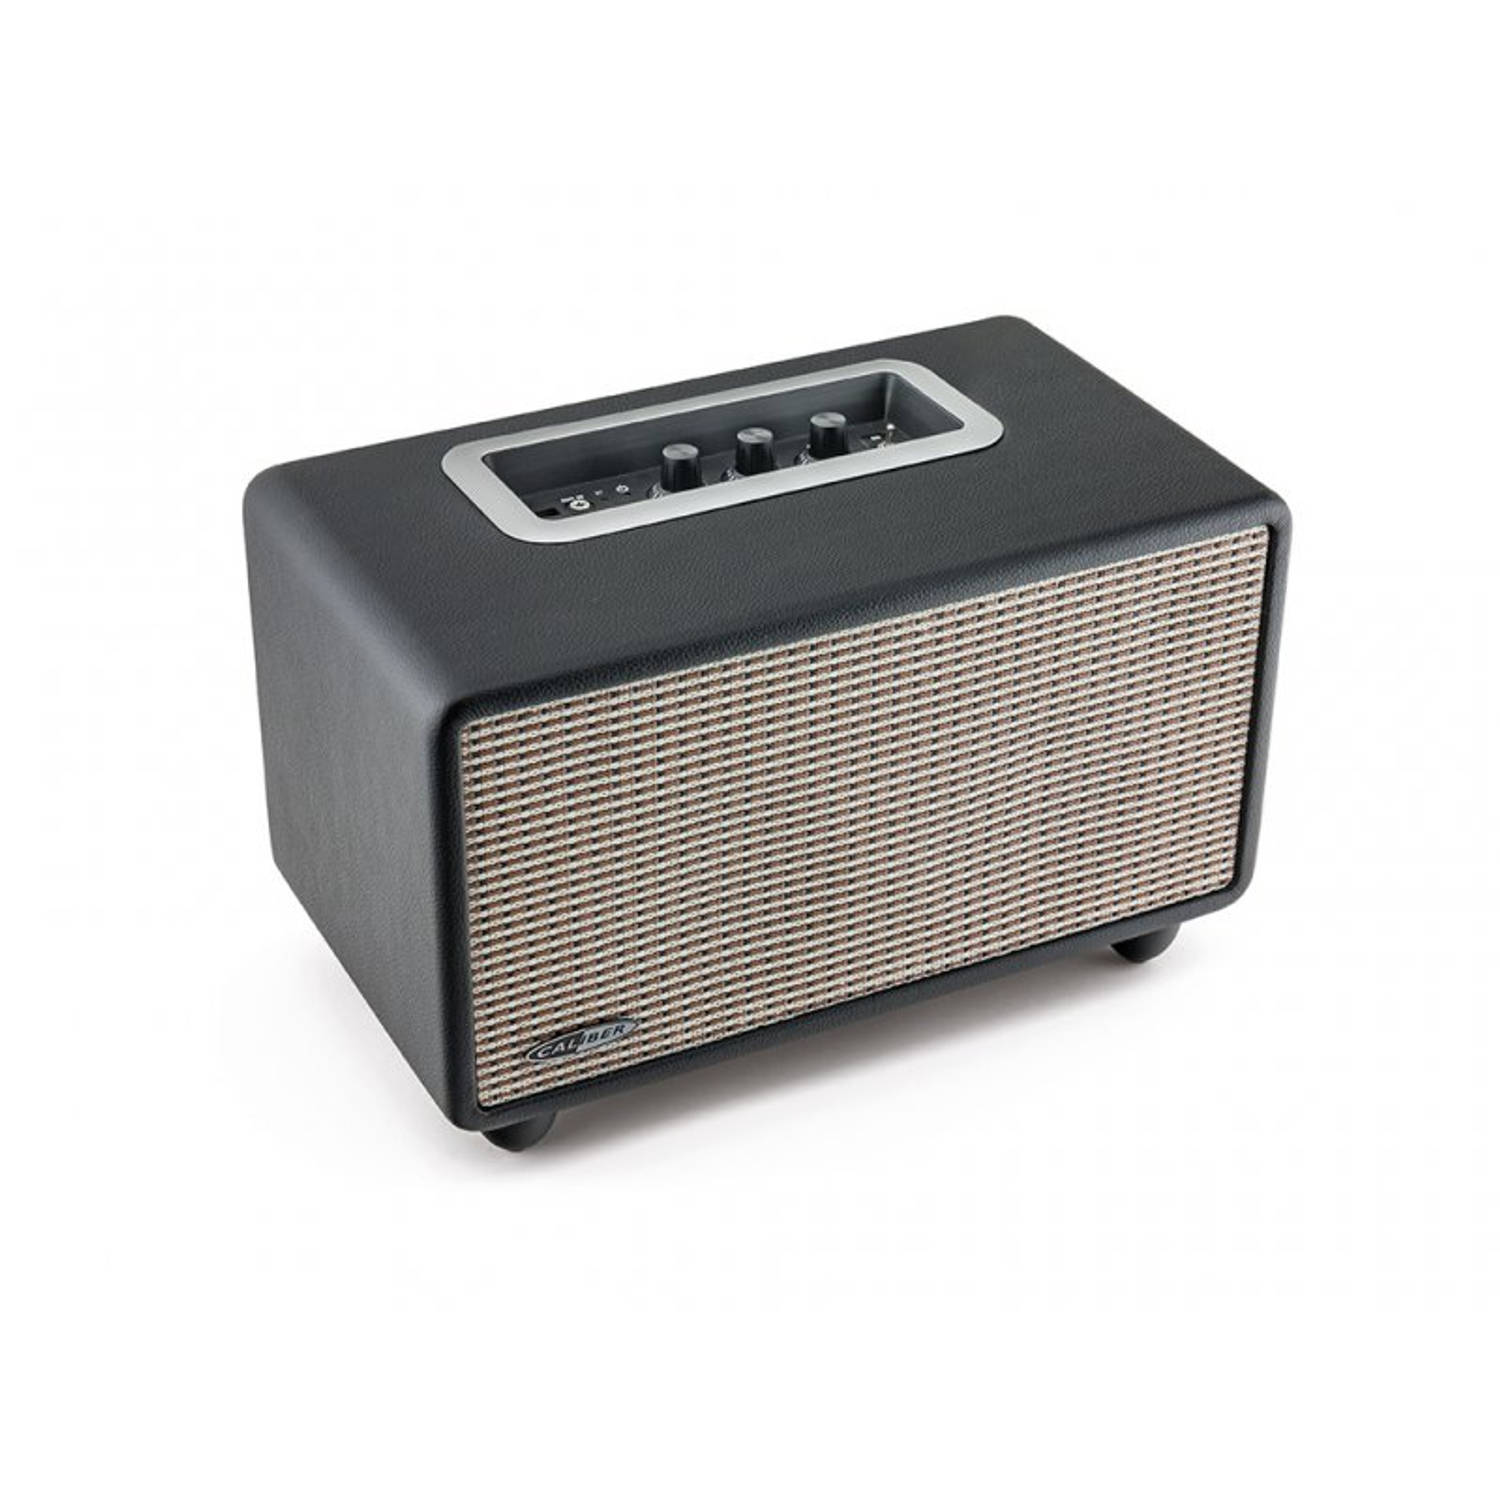 Caliber HFG411BT retro speaker